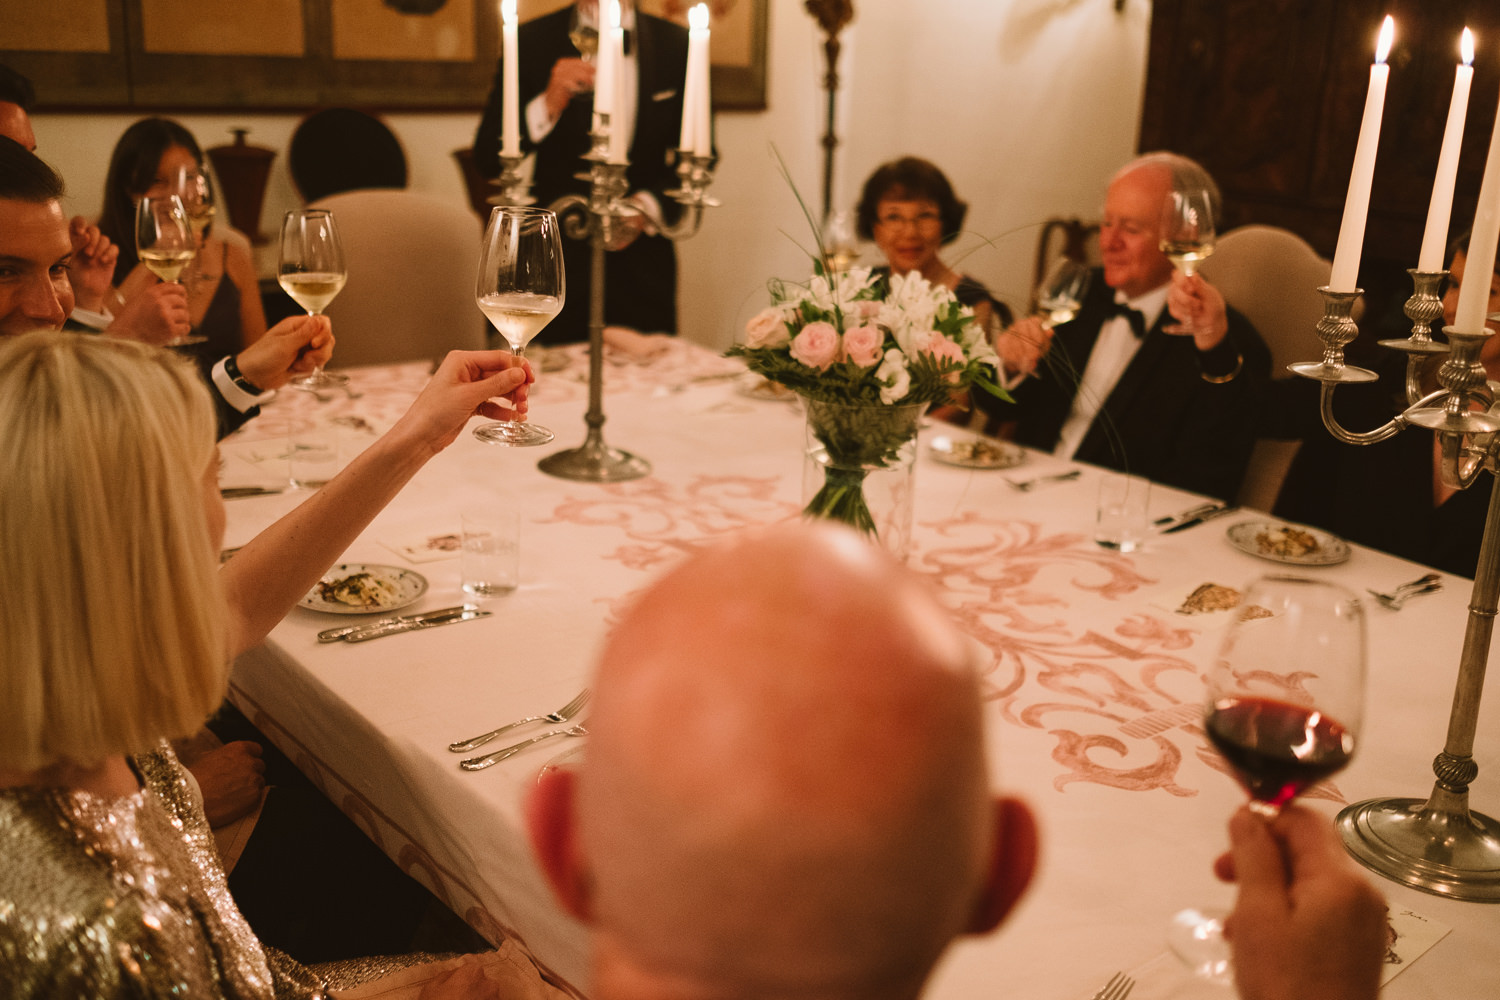 evening meal at venice wedding by david mcclelland